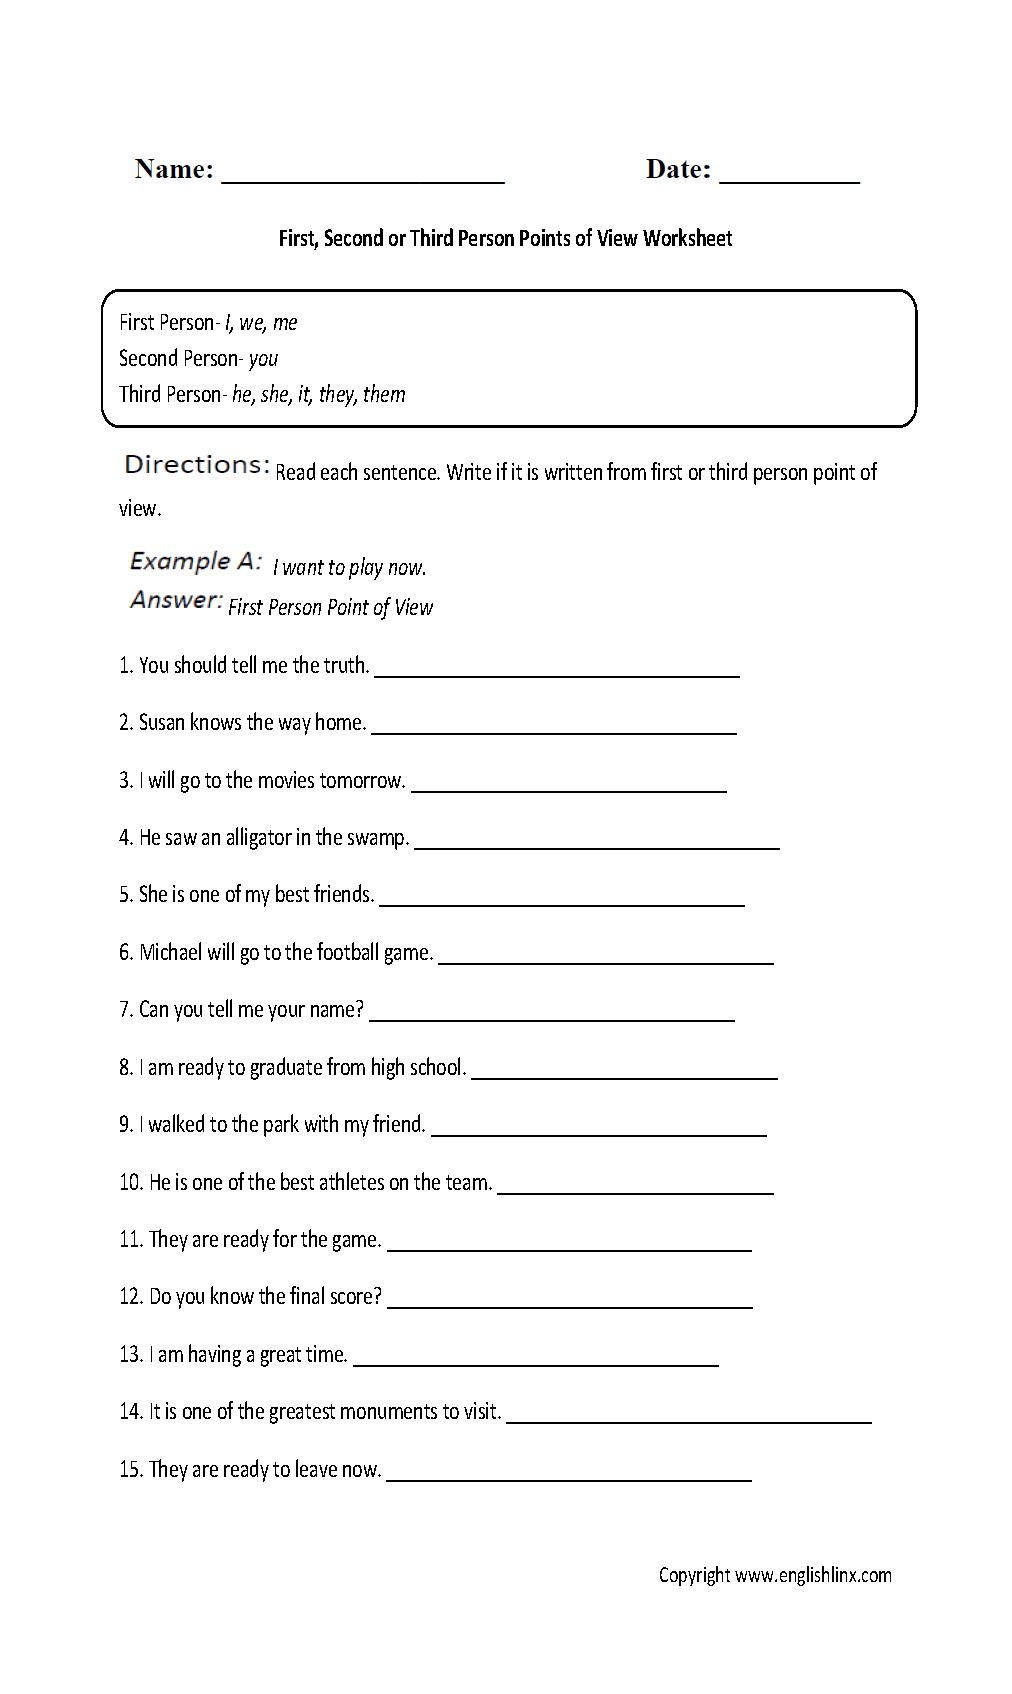 Weirdmailus  Sweet Englishlinxcom  Point Of View Worksheets With Exciting Point Of View Worksheet With Appealing Beaufort Scale Worksheet Also Adding And Subtracting Money Worksheet In Addition Webelos Religious Requirements Worksheet And Free Printable Paragraph Writing Worksheets As Well As Free Inference Worksheets Th Grade Additionally Elapsed Time Worksheets Word Problems From Englishlinxcom With Weirdmailus  Exciting Englishlinxcom  Point Of View Worksheets With Appealing Point Of View Worksheet And Sweet Beaufort Scale Worksheet Also Adding And Subtracting Money Worksheet In Addition Webelos Religious Requirements Worksheet From Englishlinxcom